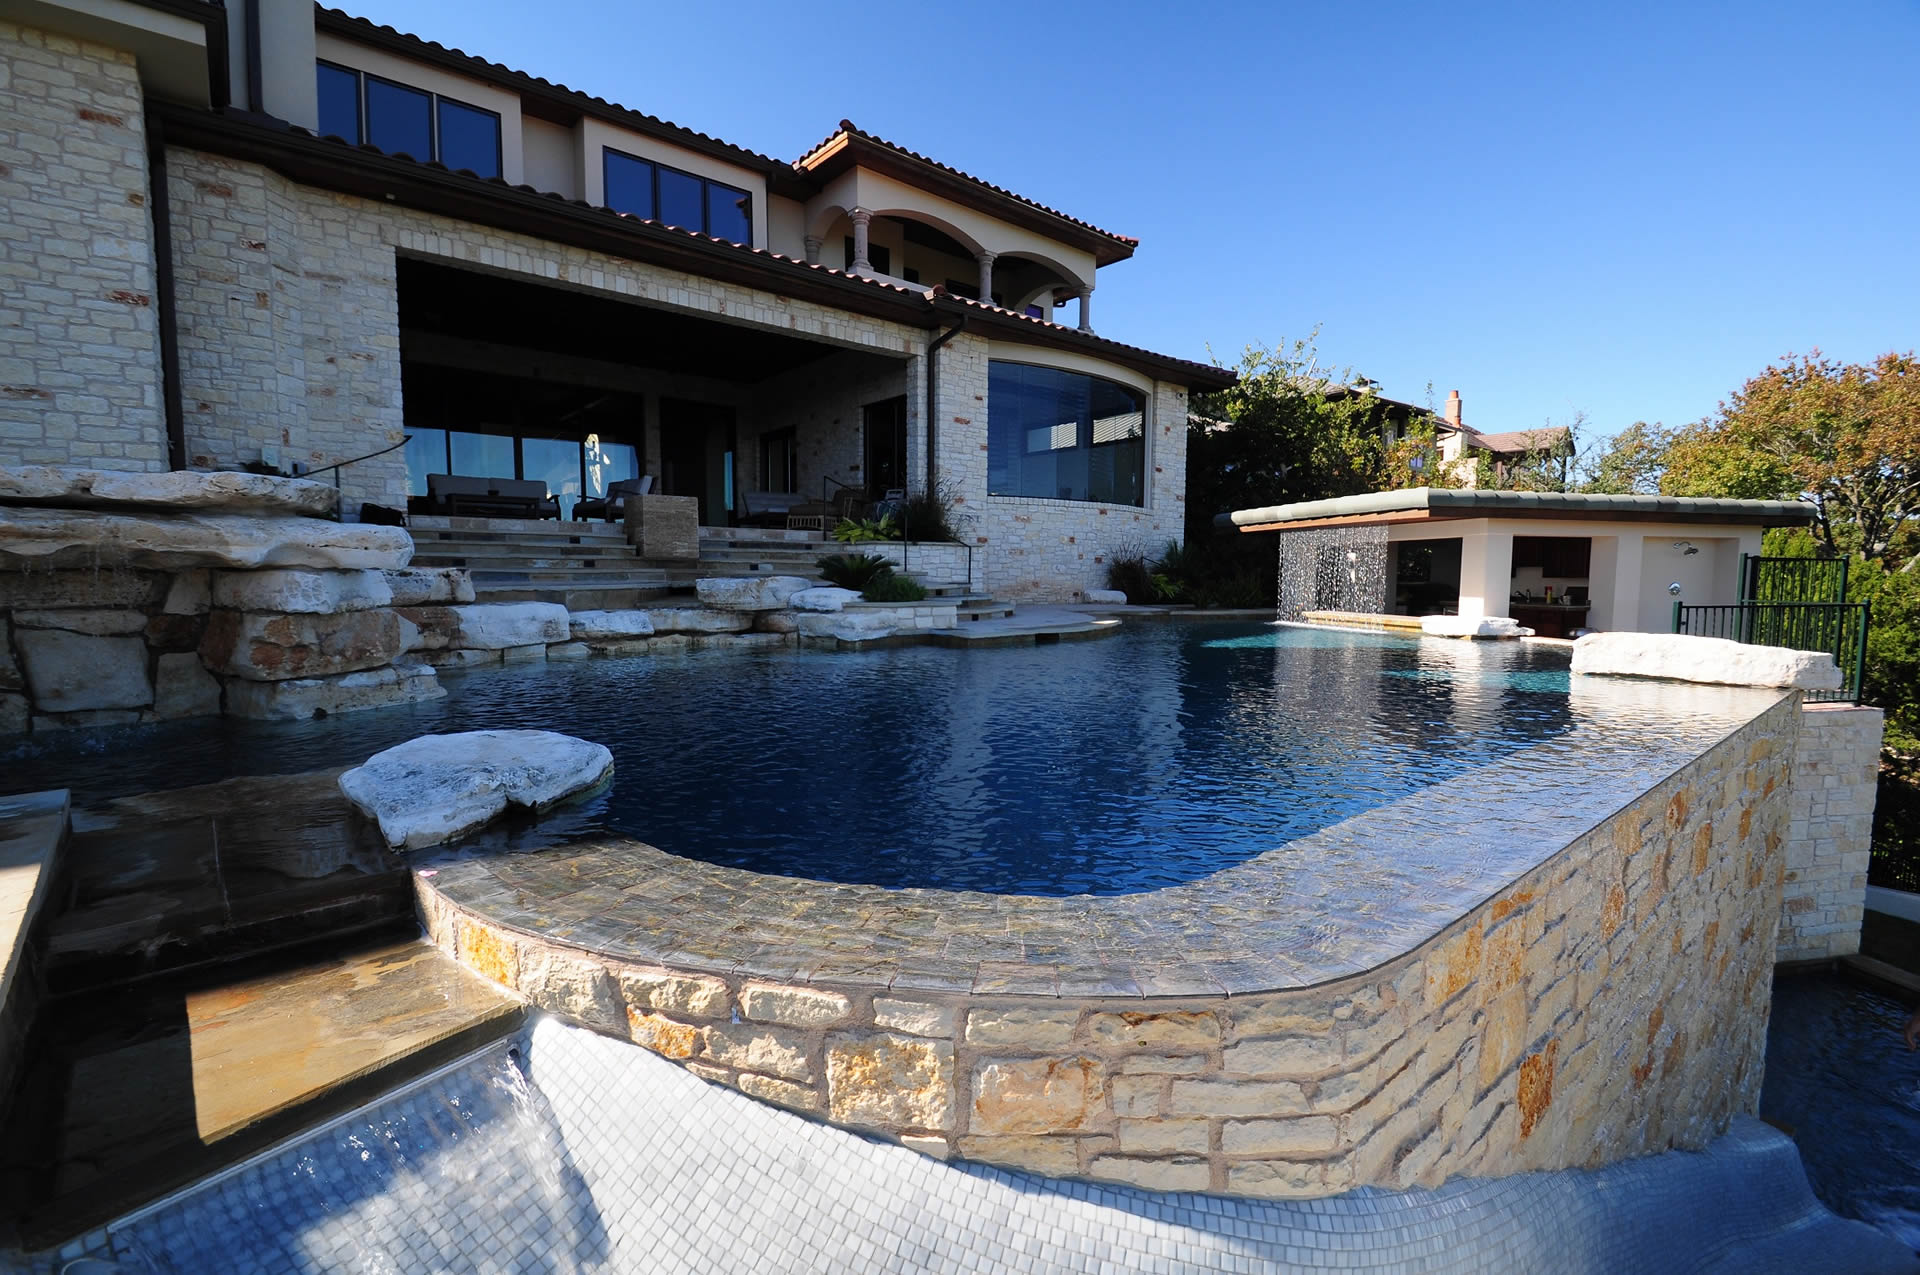 Custom Swimming Pool Builder in Austin :: Poolscapes, Inc. on custom water features, custom car builder, custom football builder, custom home builder, custom lighting, custom fireplace builder, custom inground pools, custom furniture, custom garage builder, custom pools frisco tx, custom boat builder,